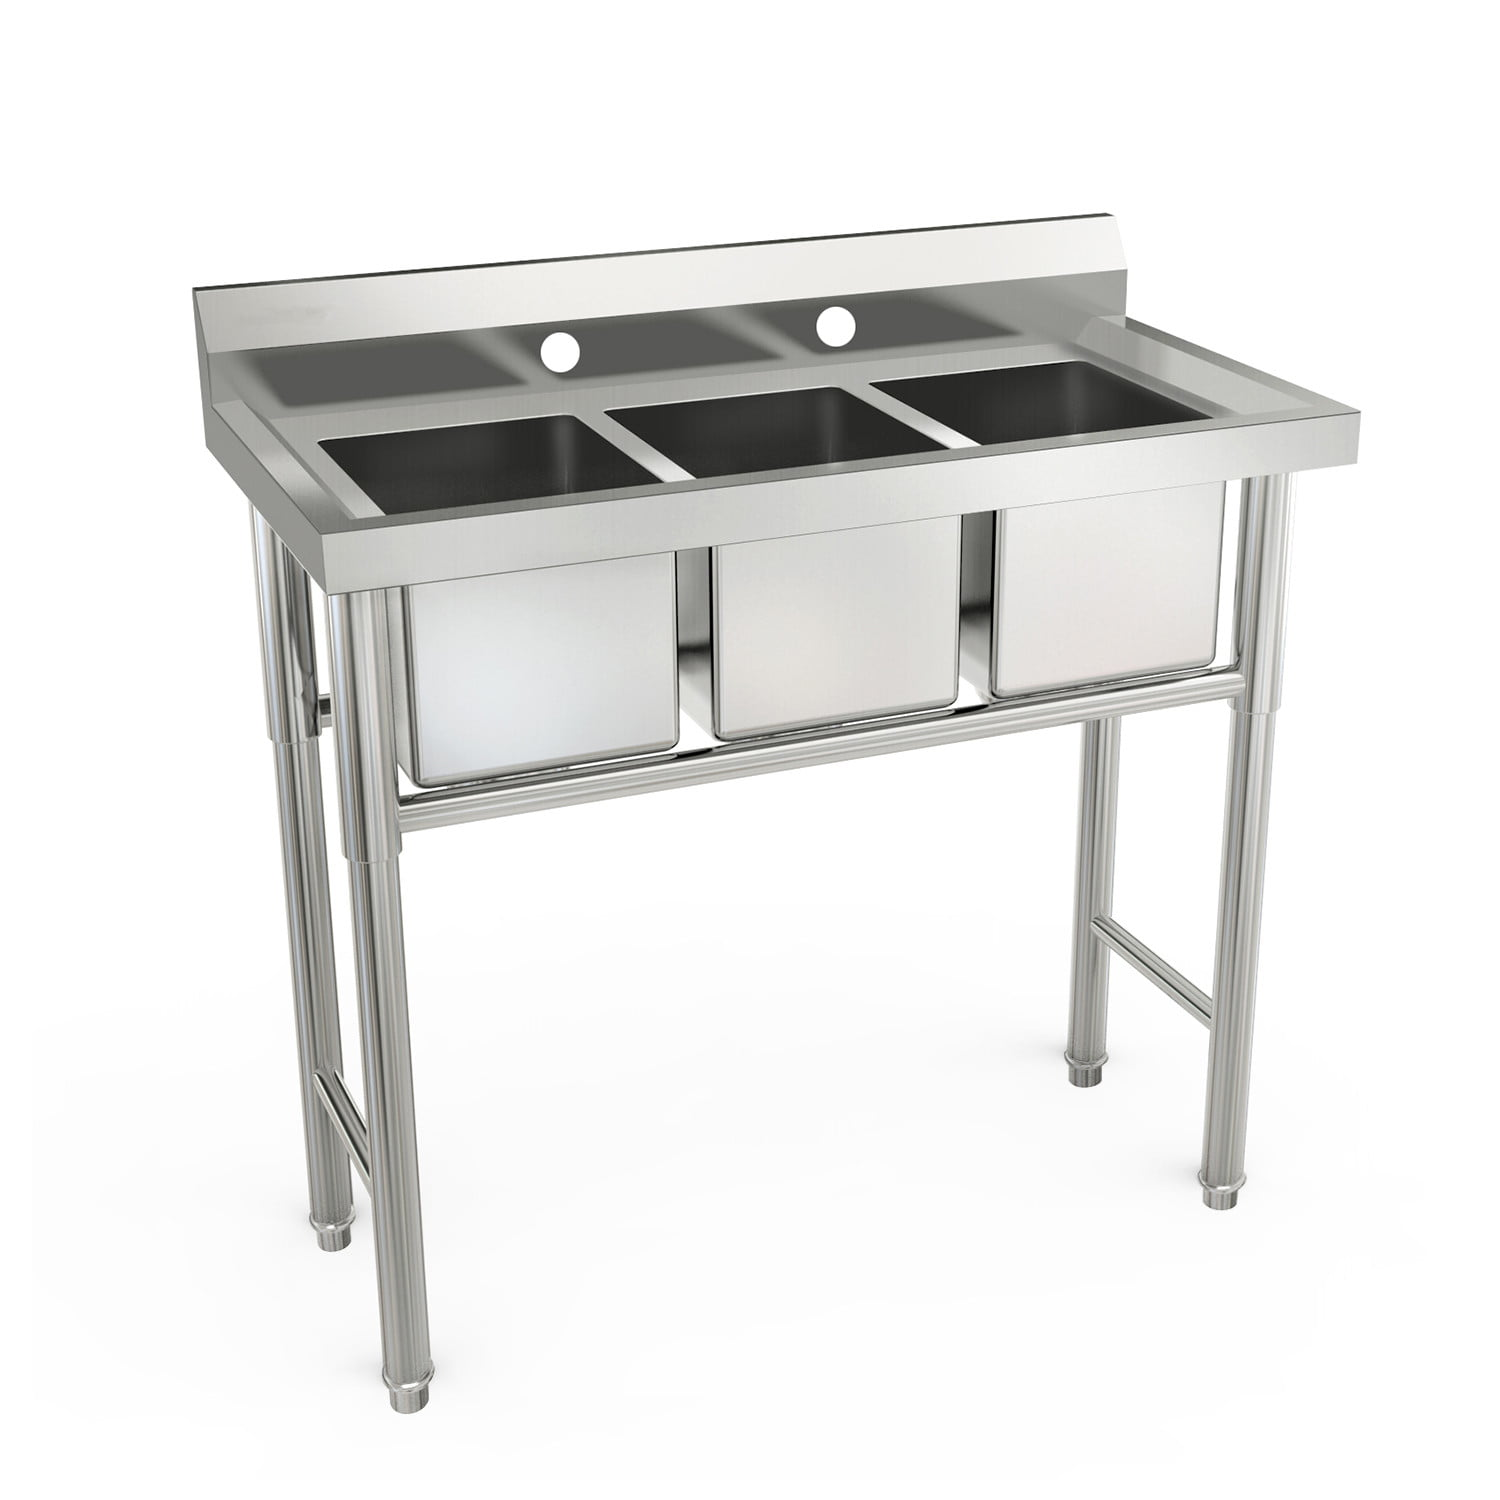 Garage Bonnlo 3-Compartment 304 Stainless Steel Utility Sink Commercial Grade Laundry Tub Culinary Sink for Outdoor Laundry//Utility Room Kitchen Indoor